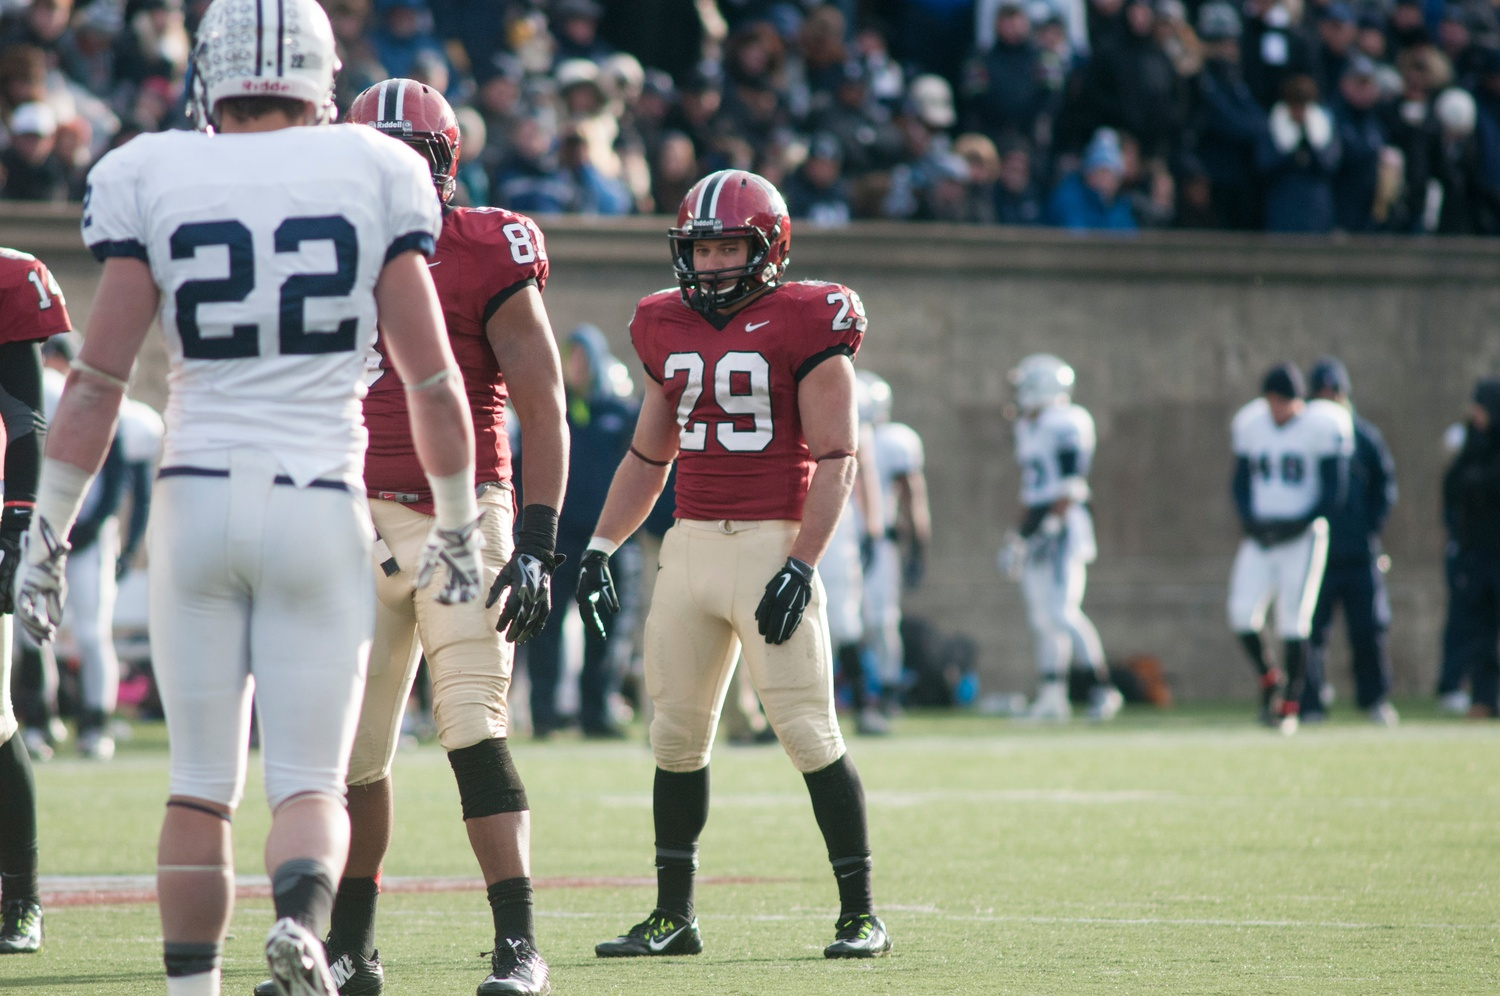 Senior running back Paul Stanton has been a fixture in the Harvard backfield since his sophomore year, when he took over the starting job from graduated senior Treavor Scales '13.